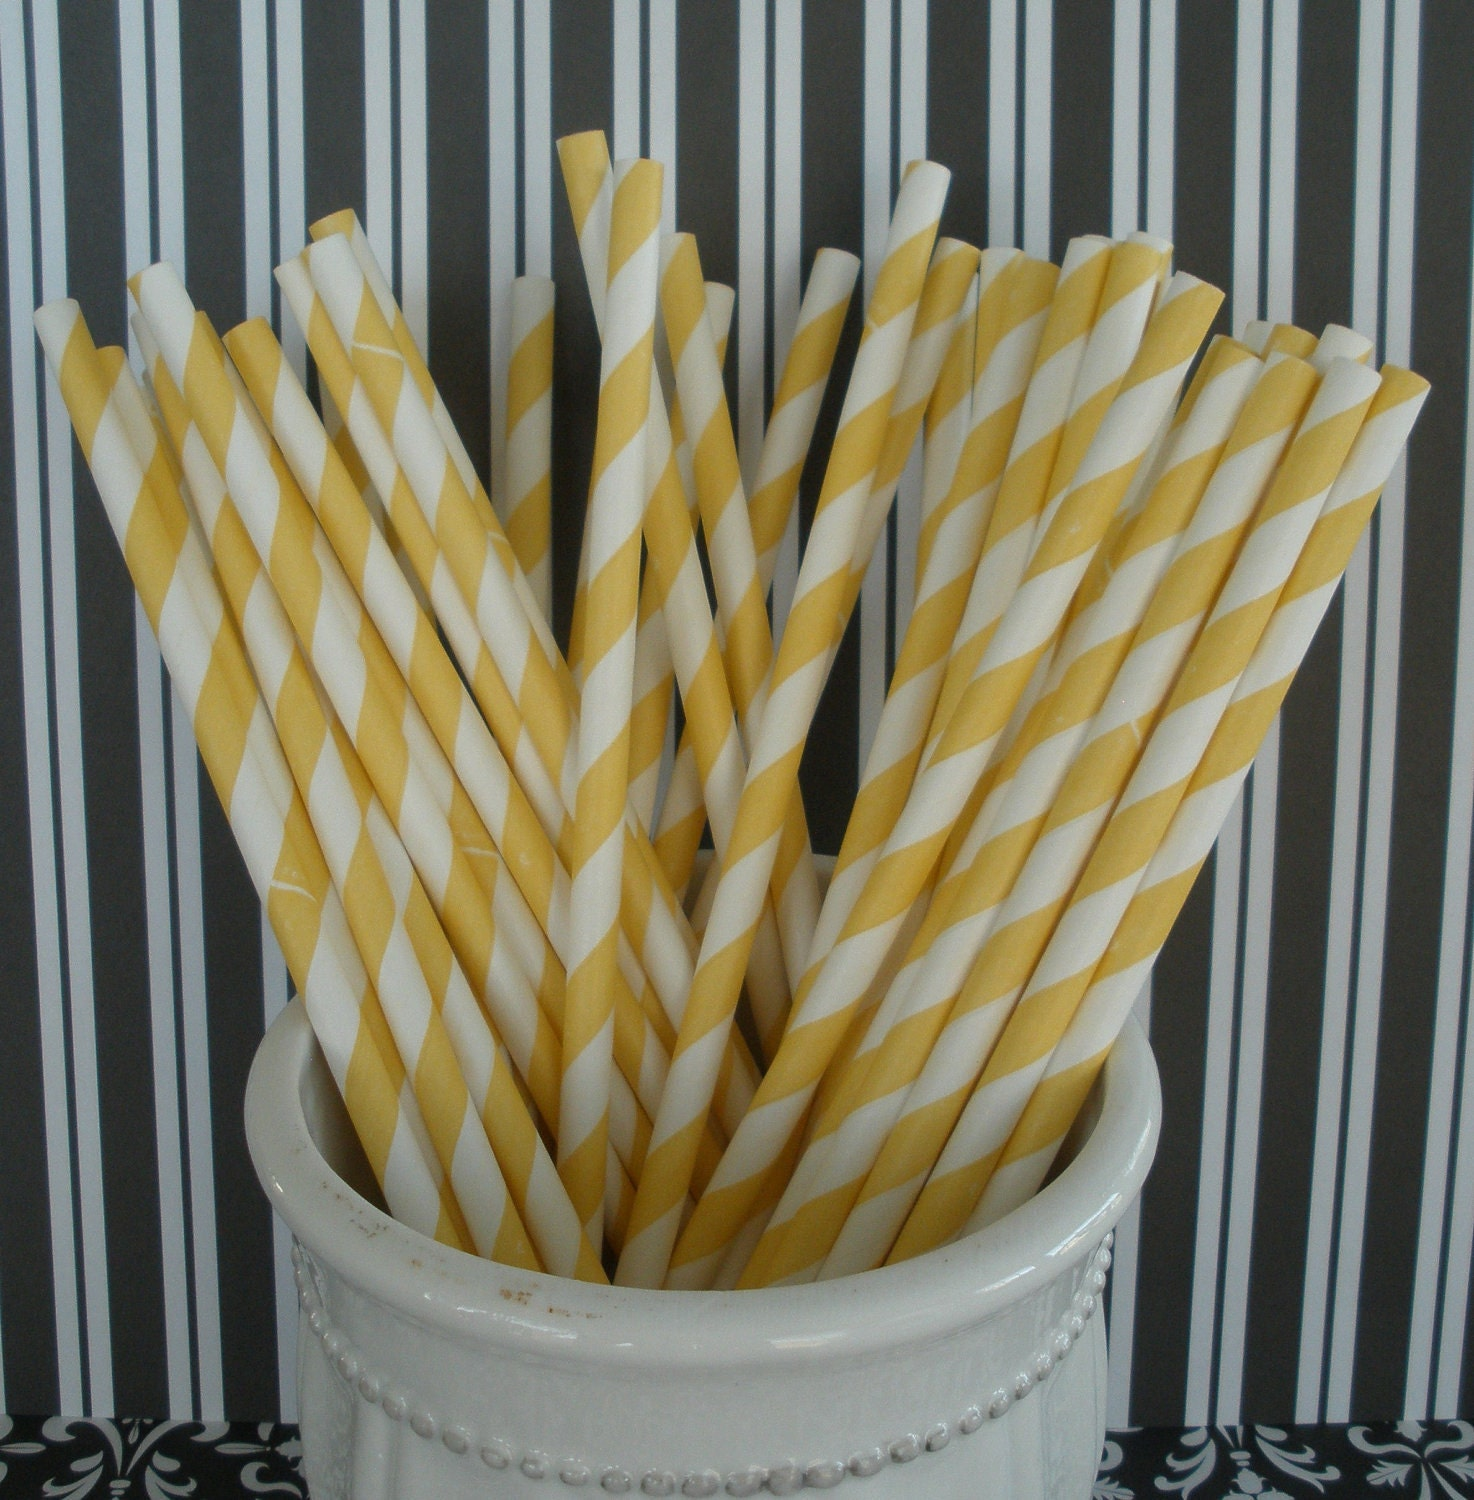 50 Yellow Stripe Paper Drinking Straws w/ DIY Blank Printables, Retro, Vintage Inspired, Biodegradable